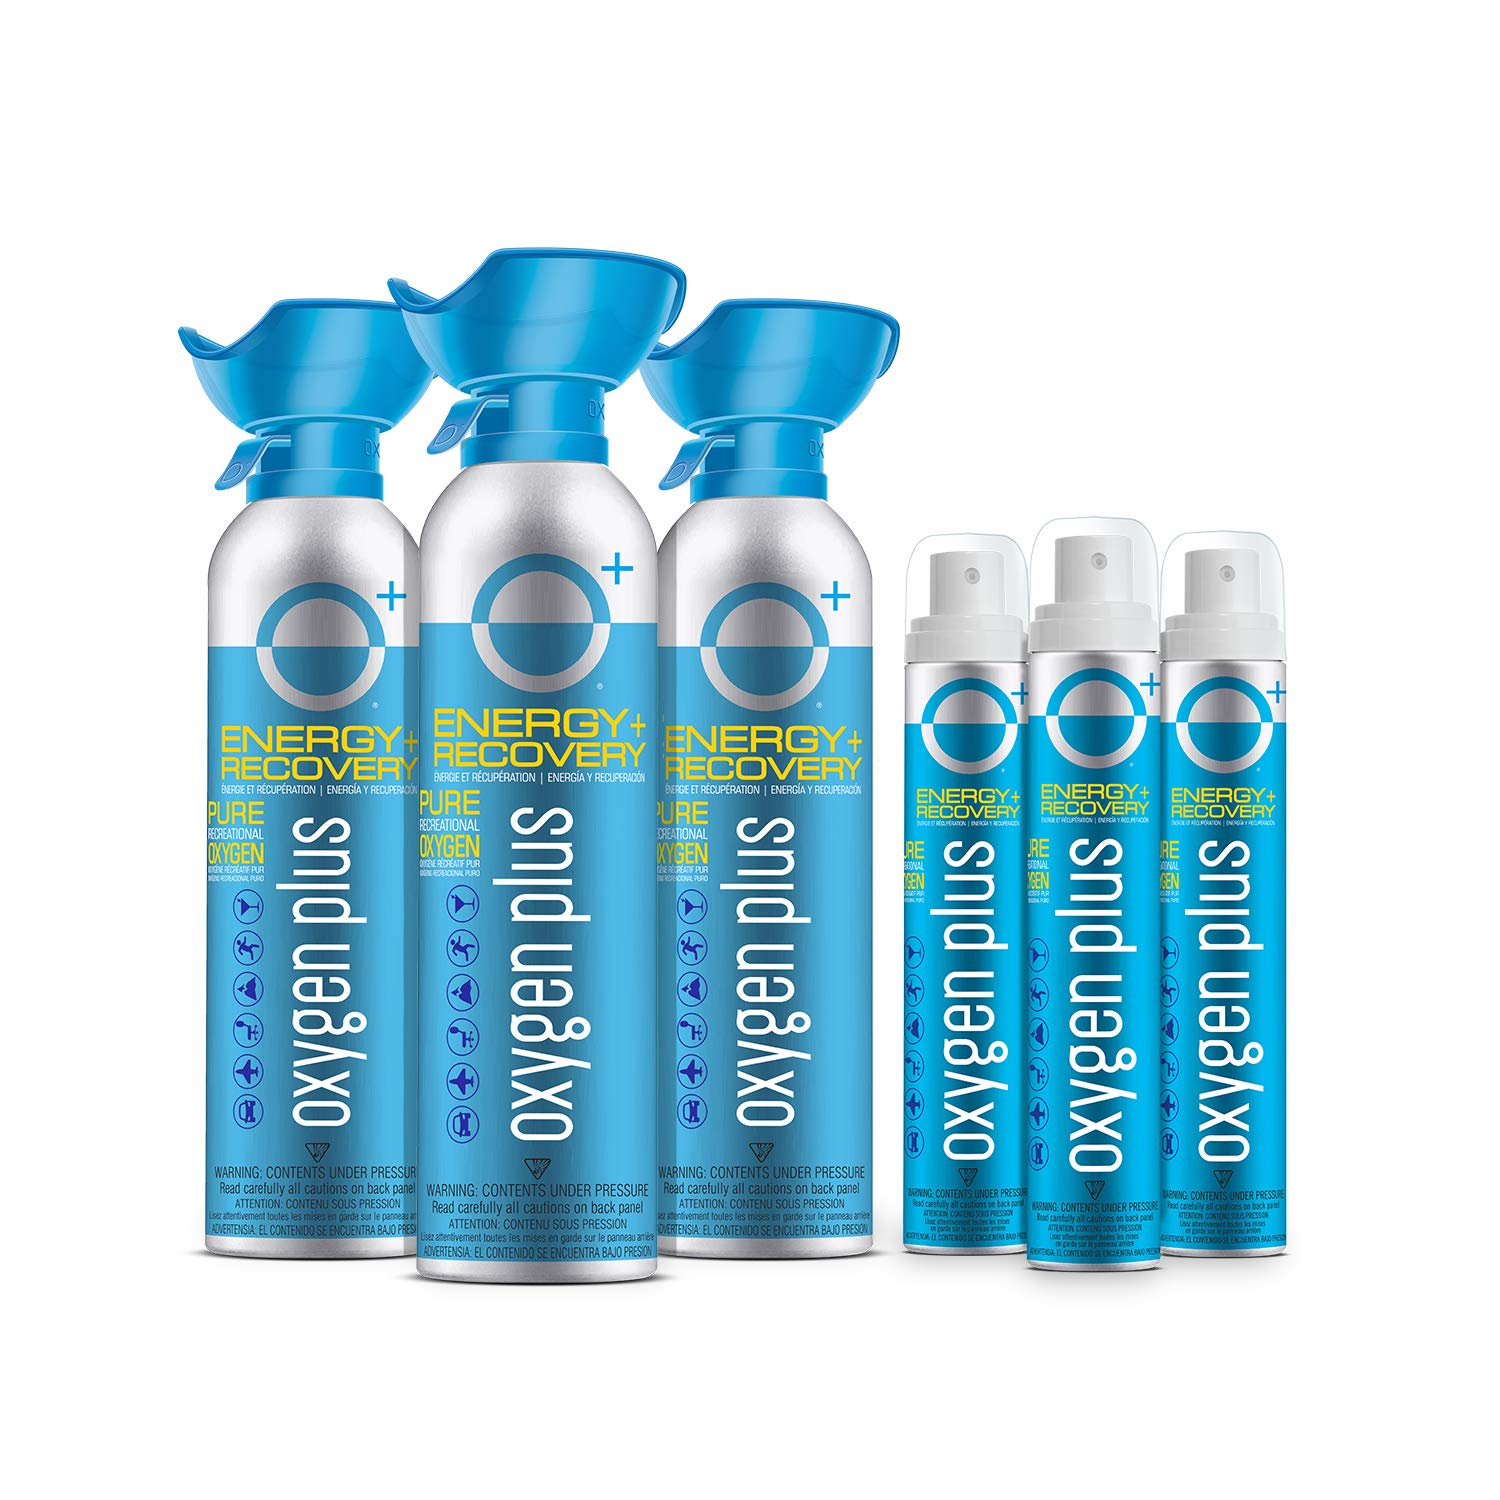 Oxygen Plus Oxygen Cans Sports Pack: 3 O+ Biggi & 3 O+ Skinni - Boost Oxygen Levels with Portable & Concentrated Recreational Oxygen for Altitude Performance & Energy